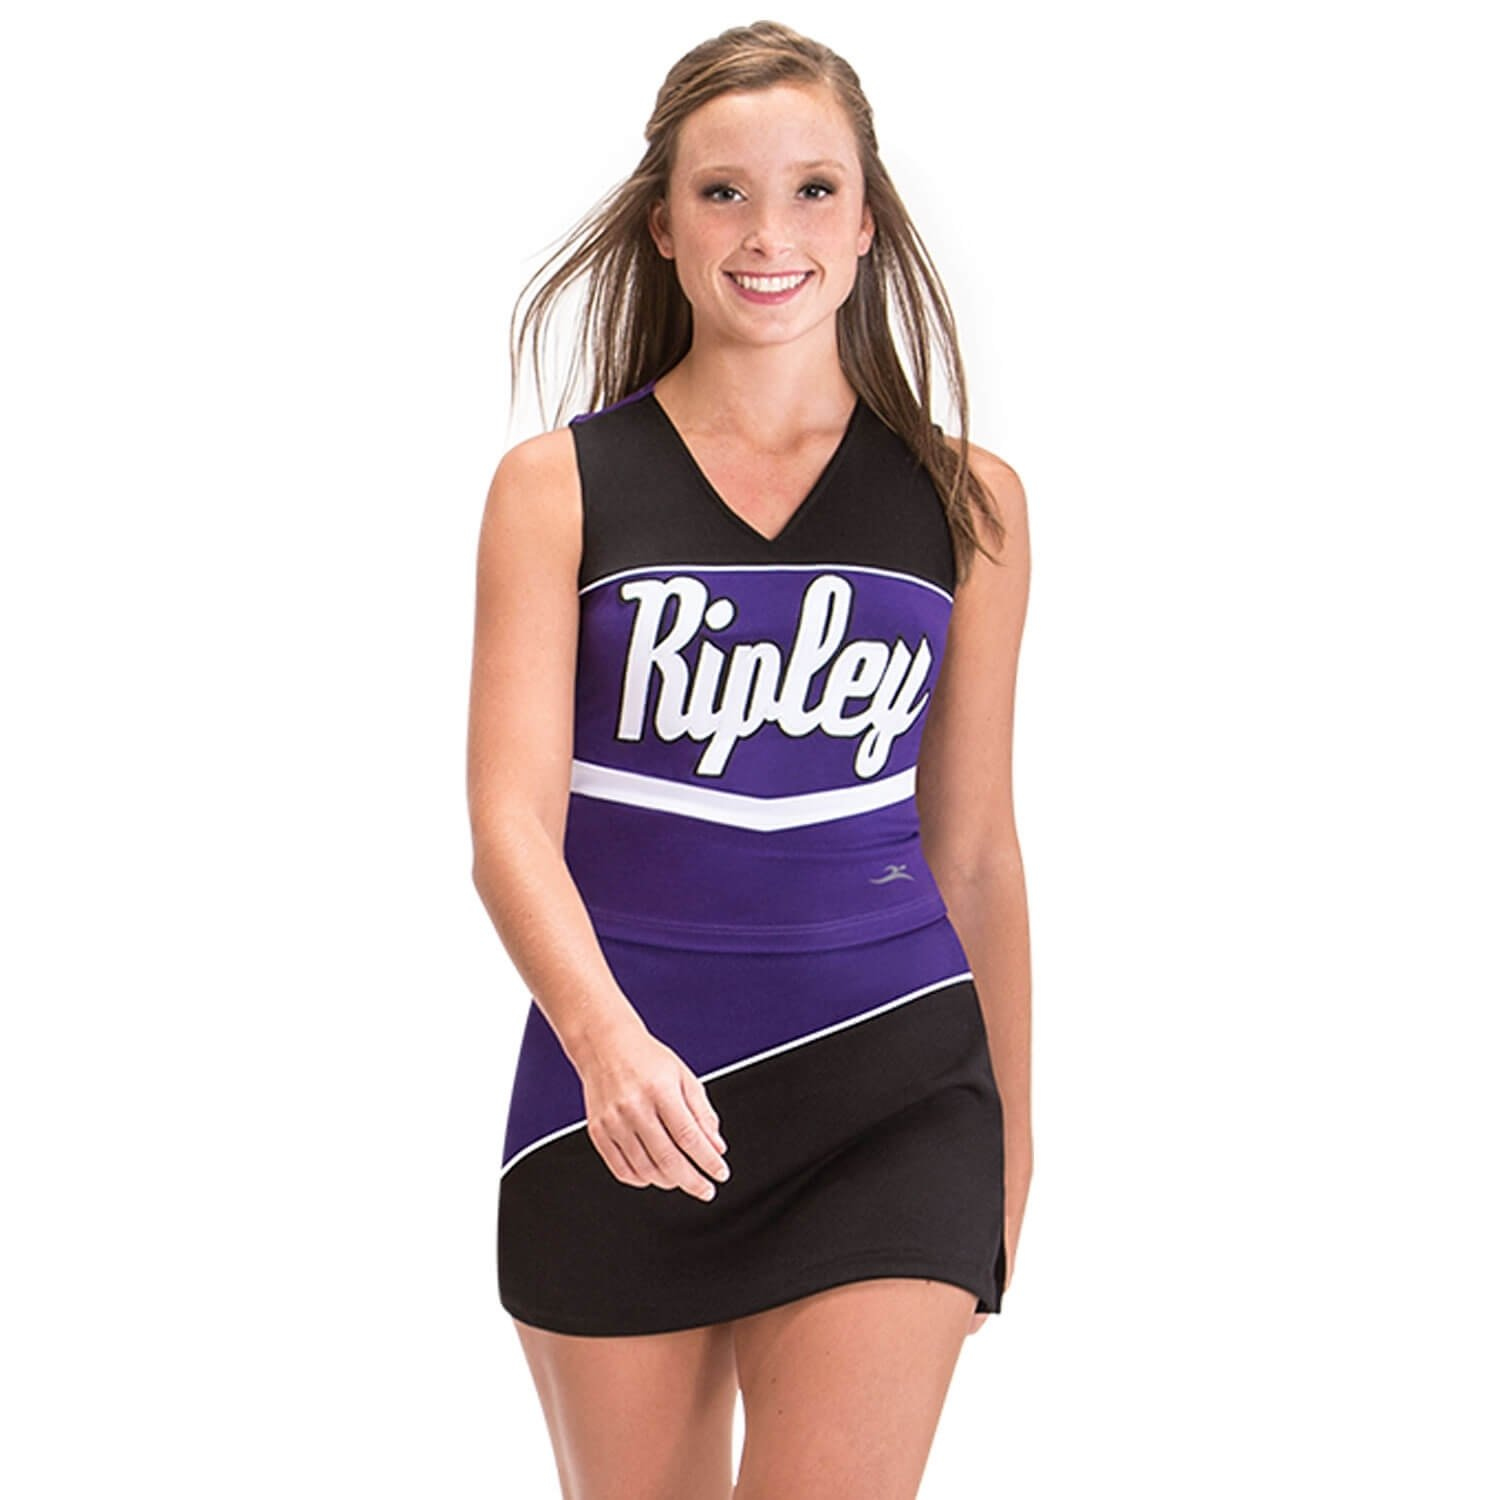 Motionwear Cheerleading Uniforms Skirt